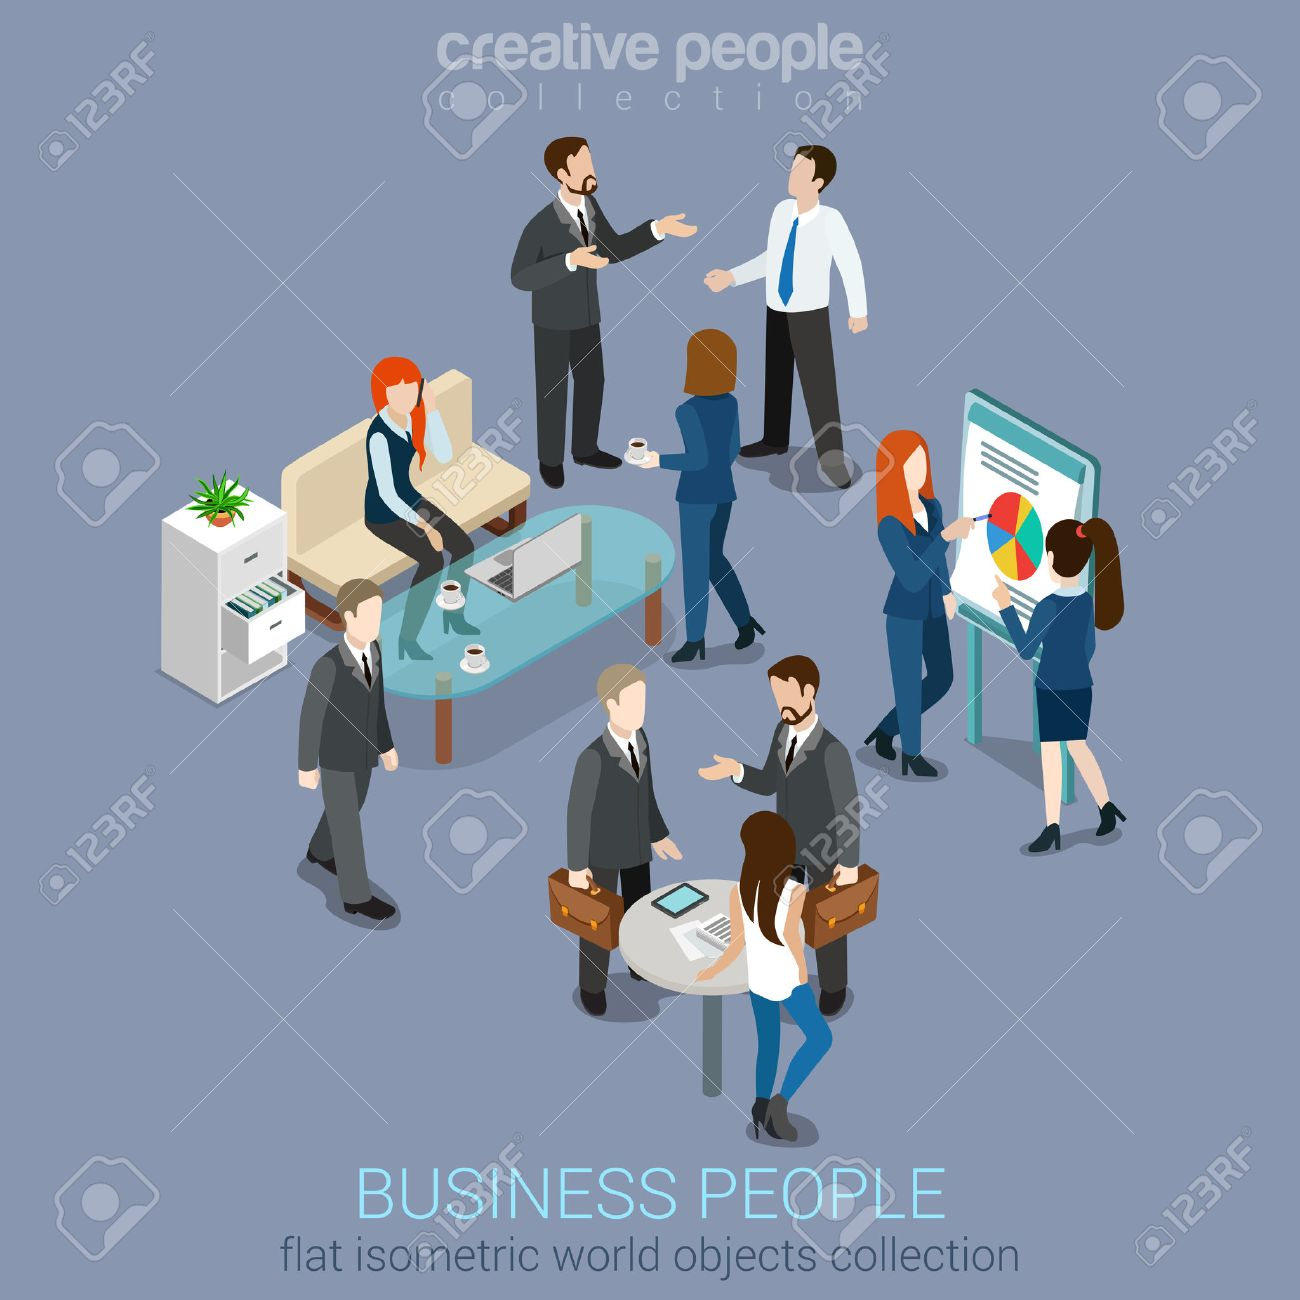 Flat 3d web isometric office room interior businessmen collaboration teamwork brainstorming waiting meeting negotiation infographic concept vector set. Creative people collection - 54641274